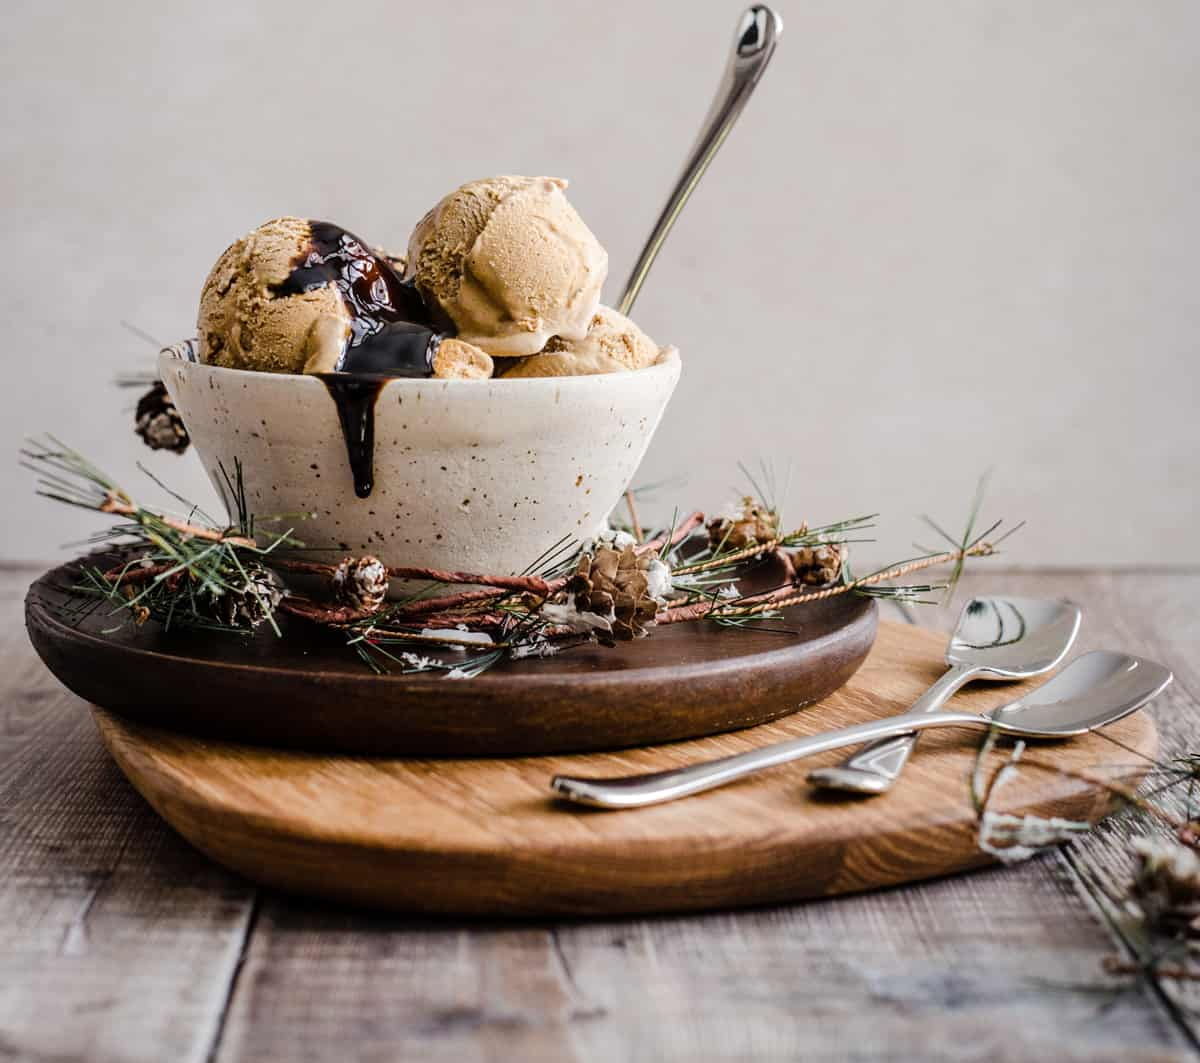 ice cream in a bowl with a spoon